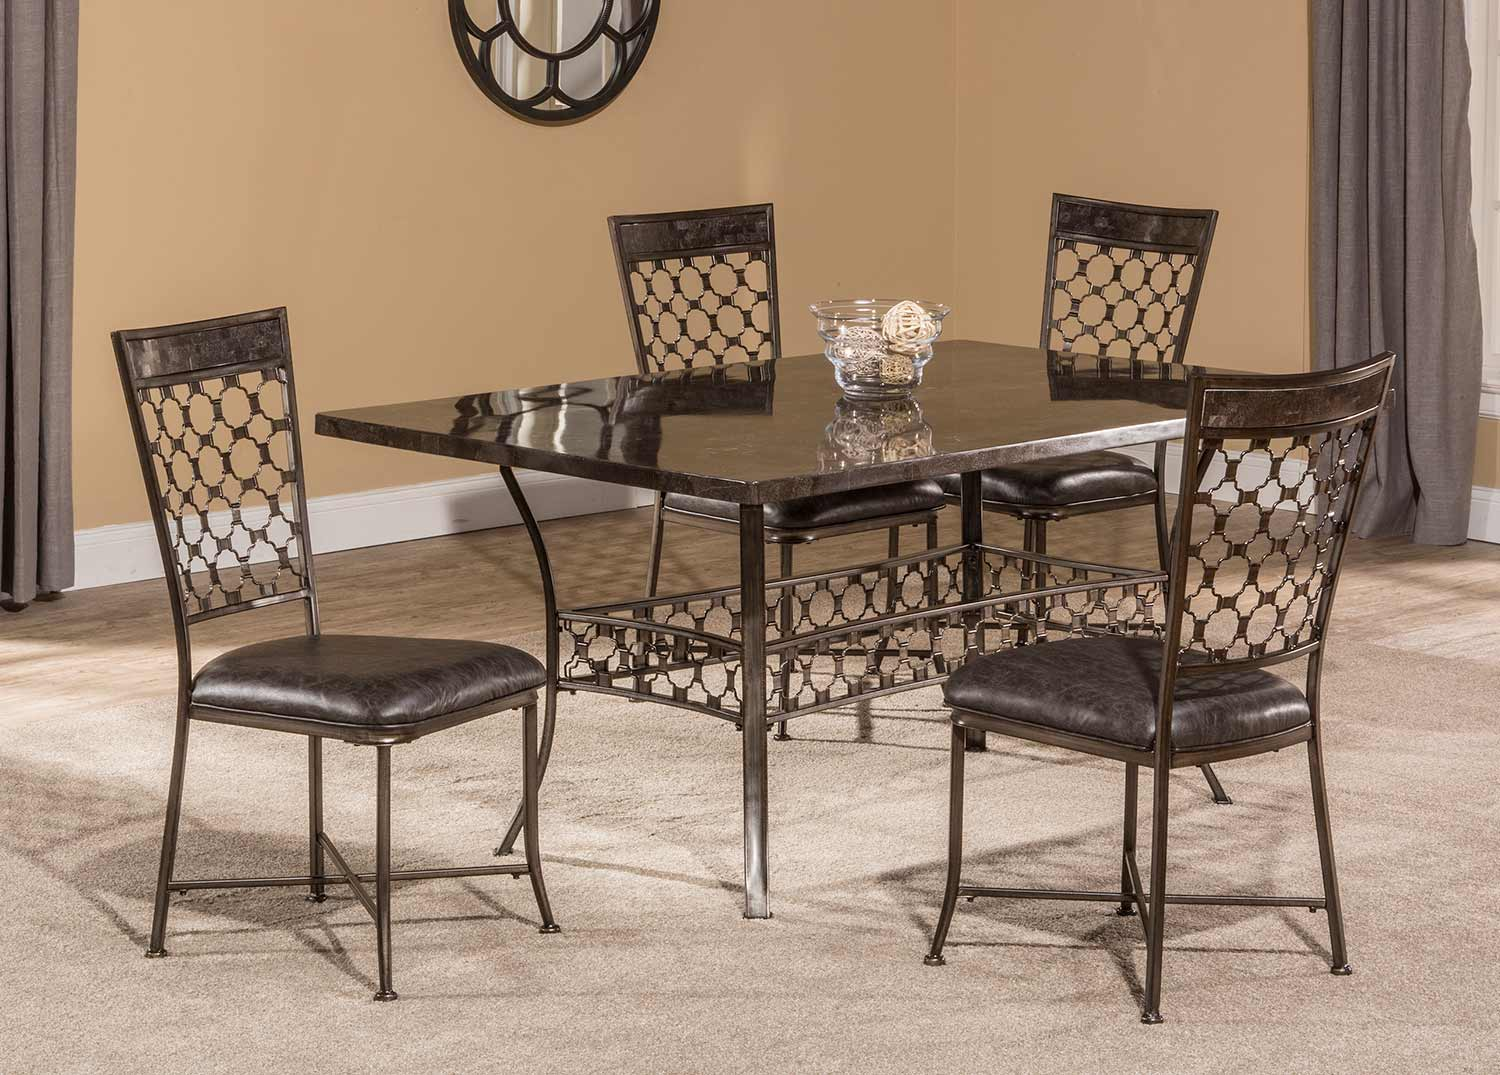 Hillsdale Brescello 5-Piece Rectangle Dining Set - Charcoal/Blue Stone